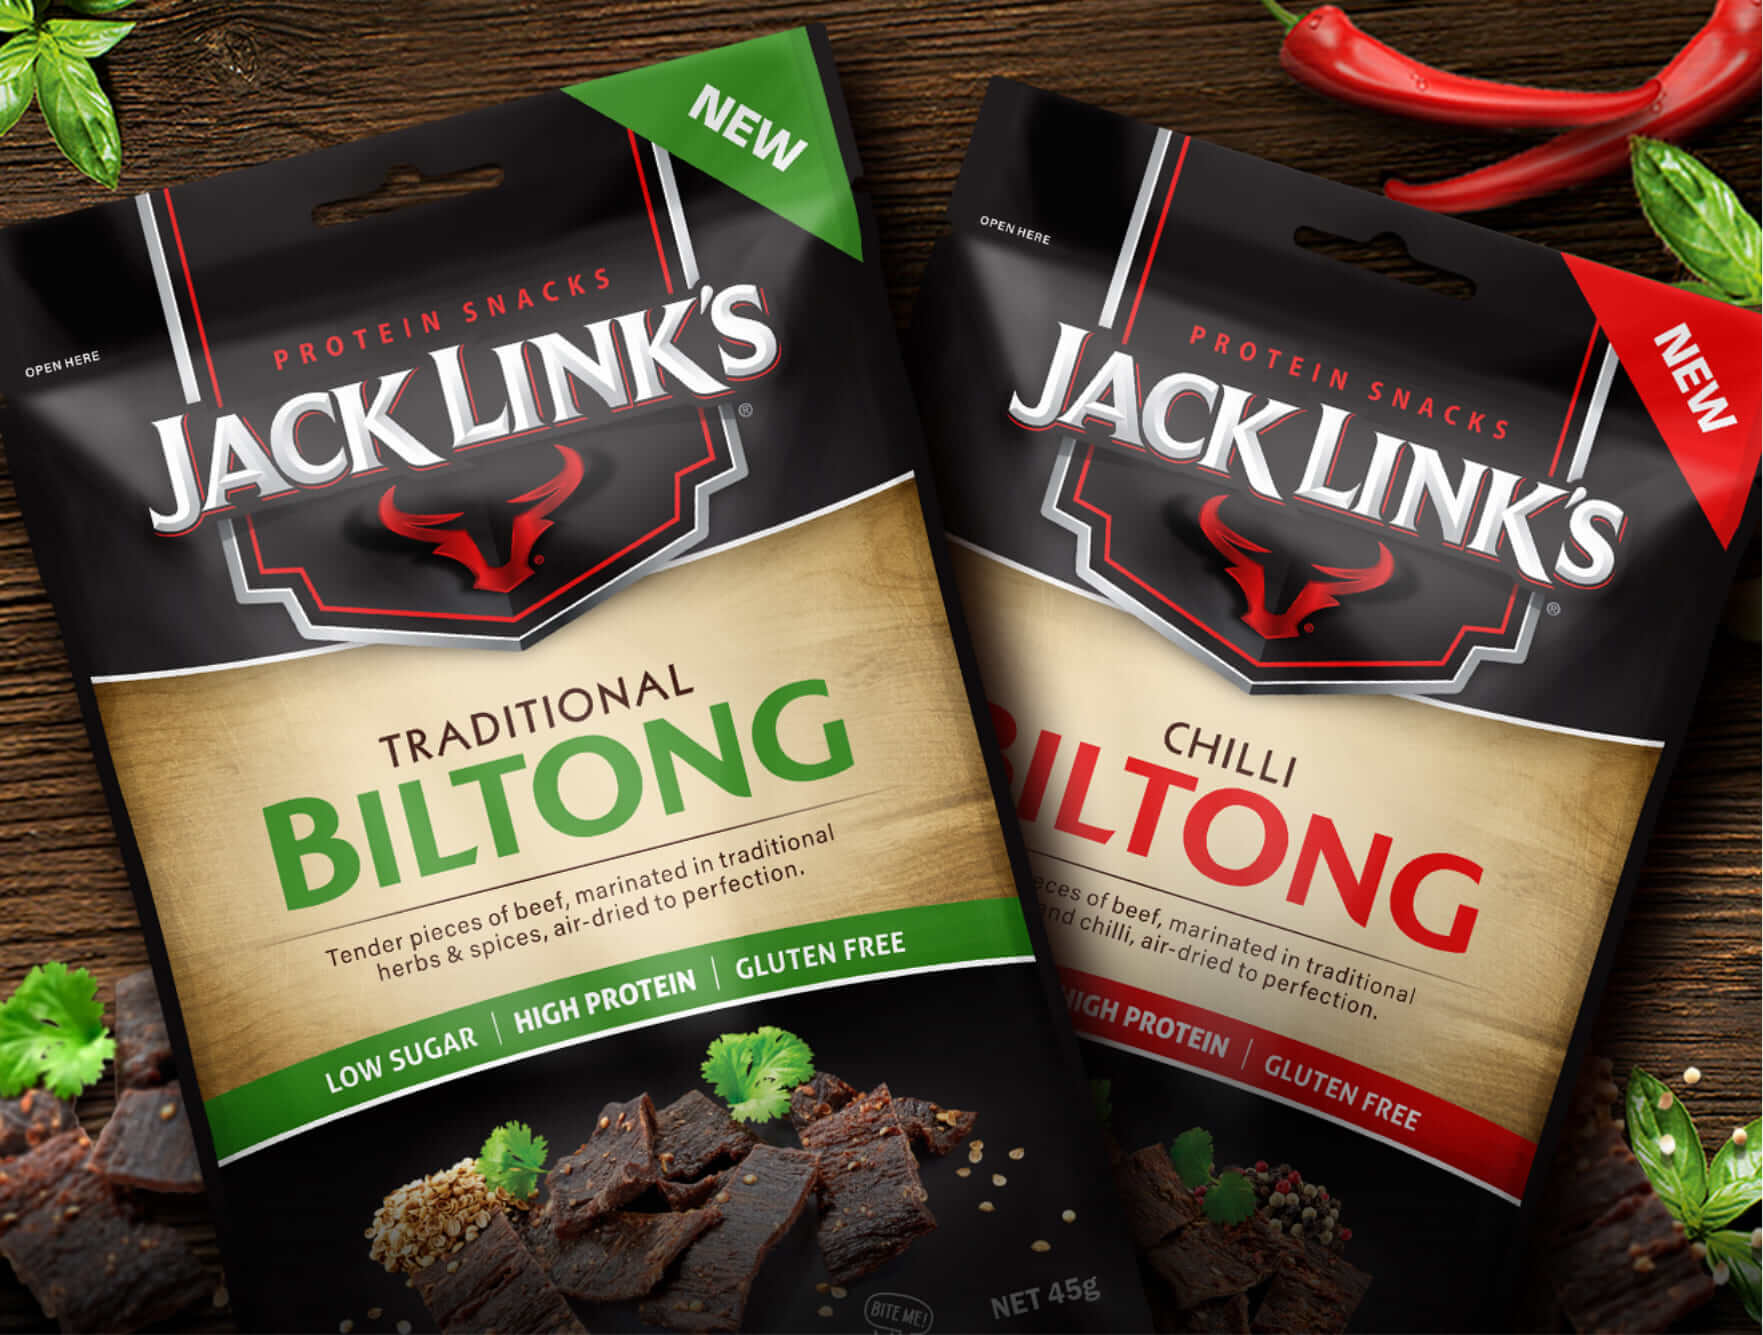 FMCG Marketing for Jack Link's Biltong - Three Scoops